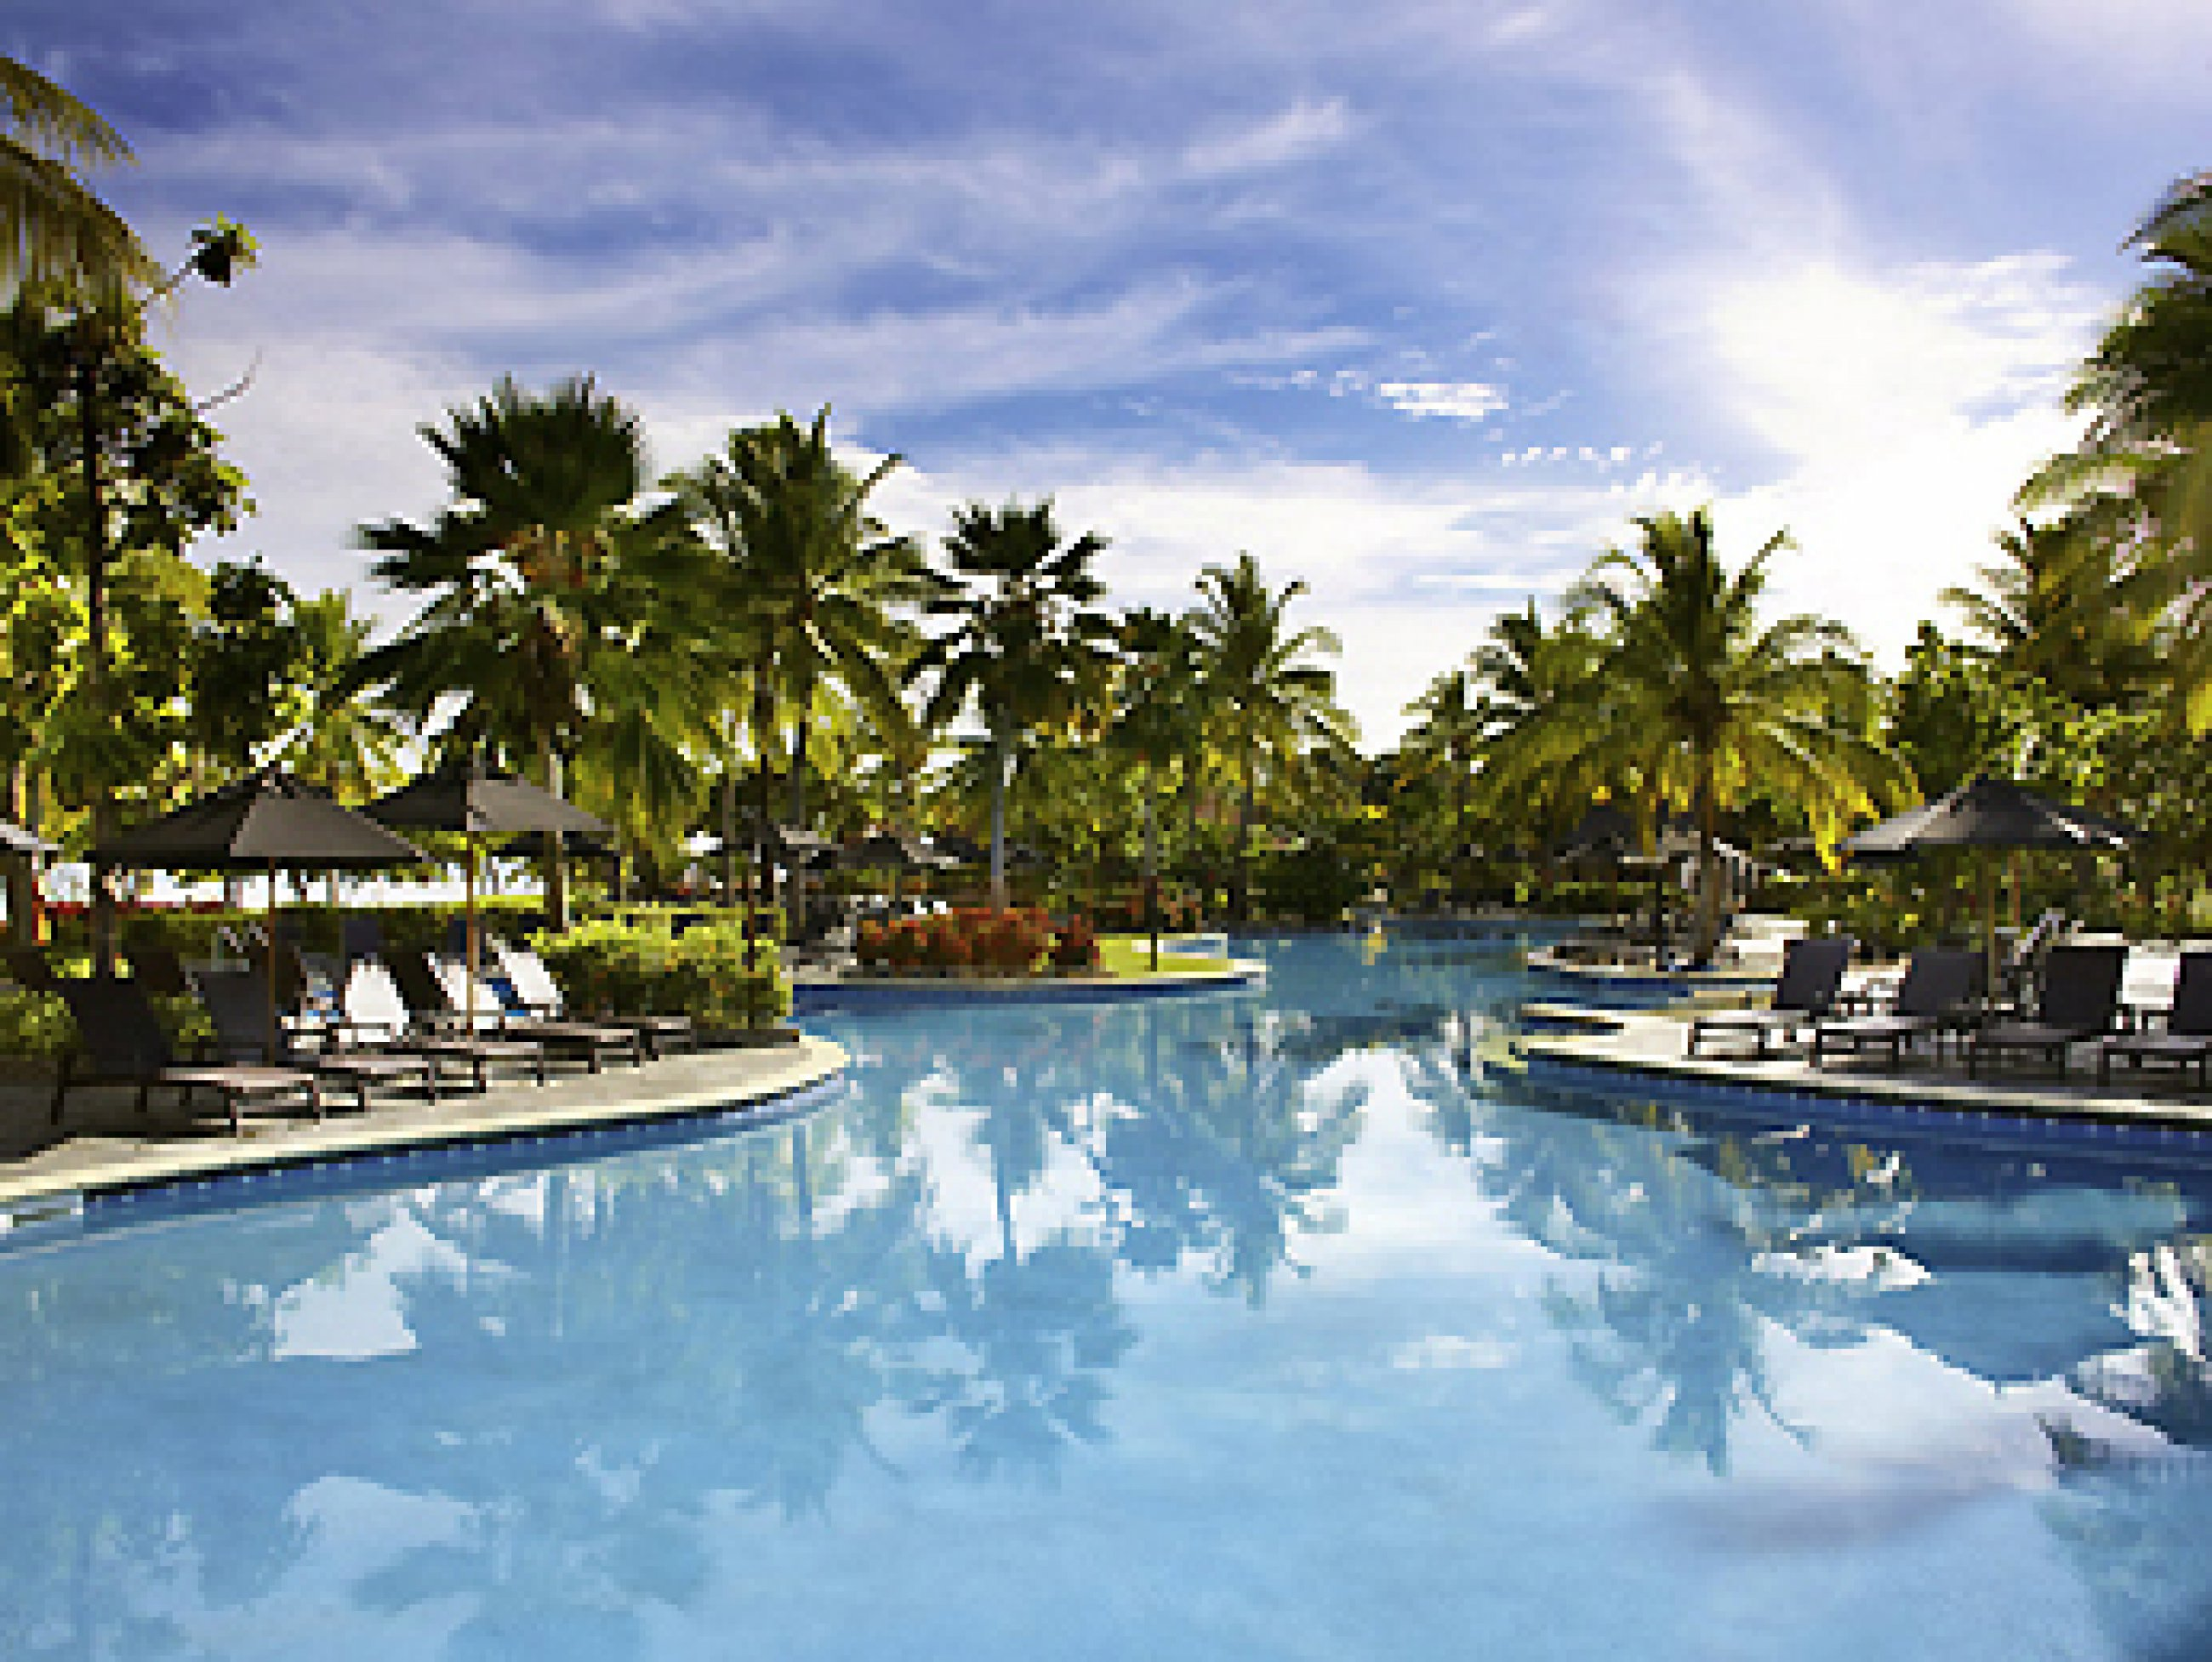 https://bubo.sk/uploads/galleries/5031/sofitel-fiji-2.jpg